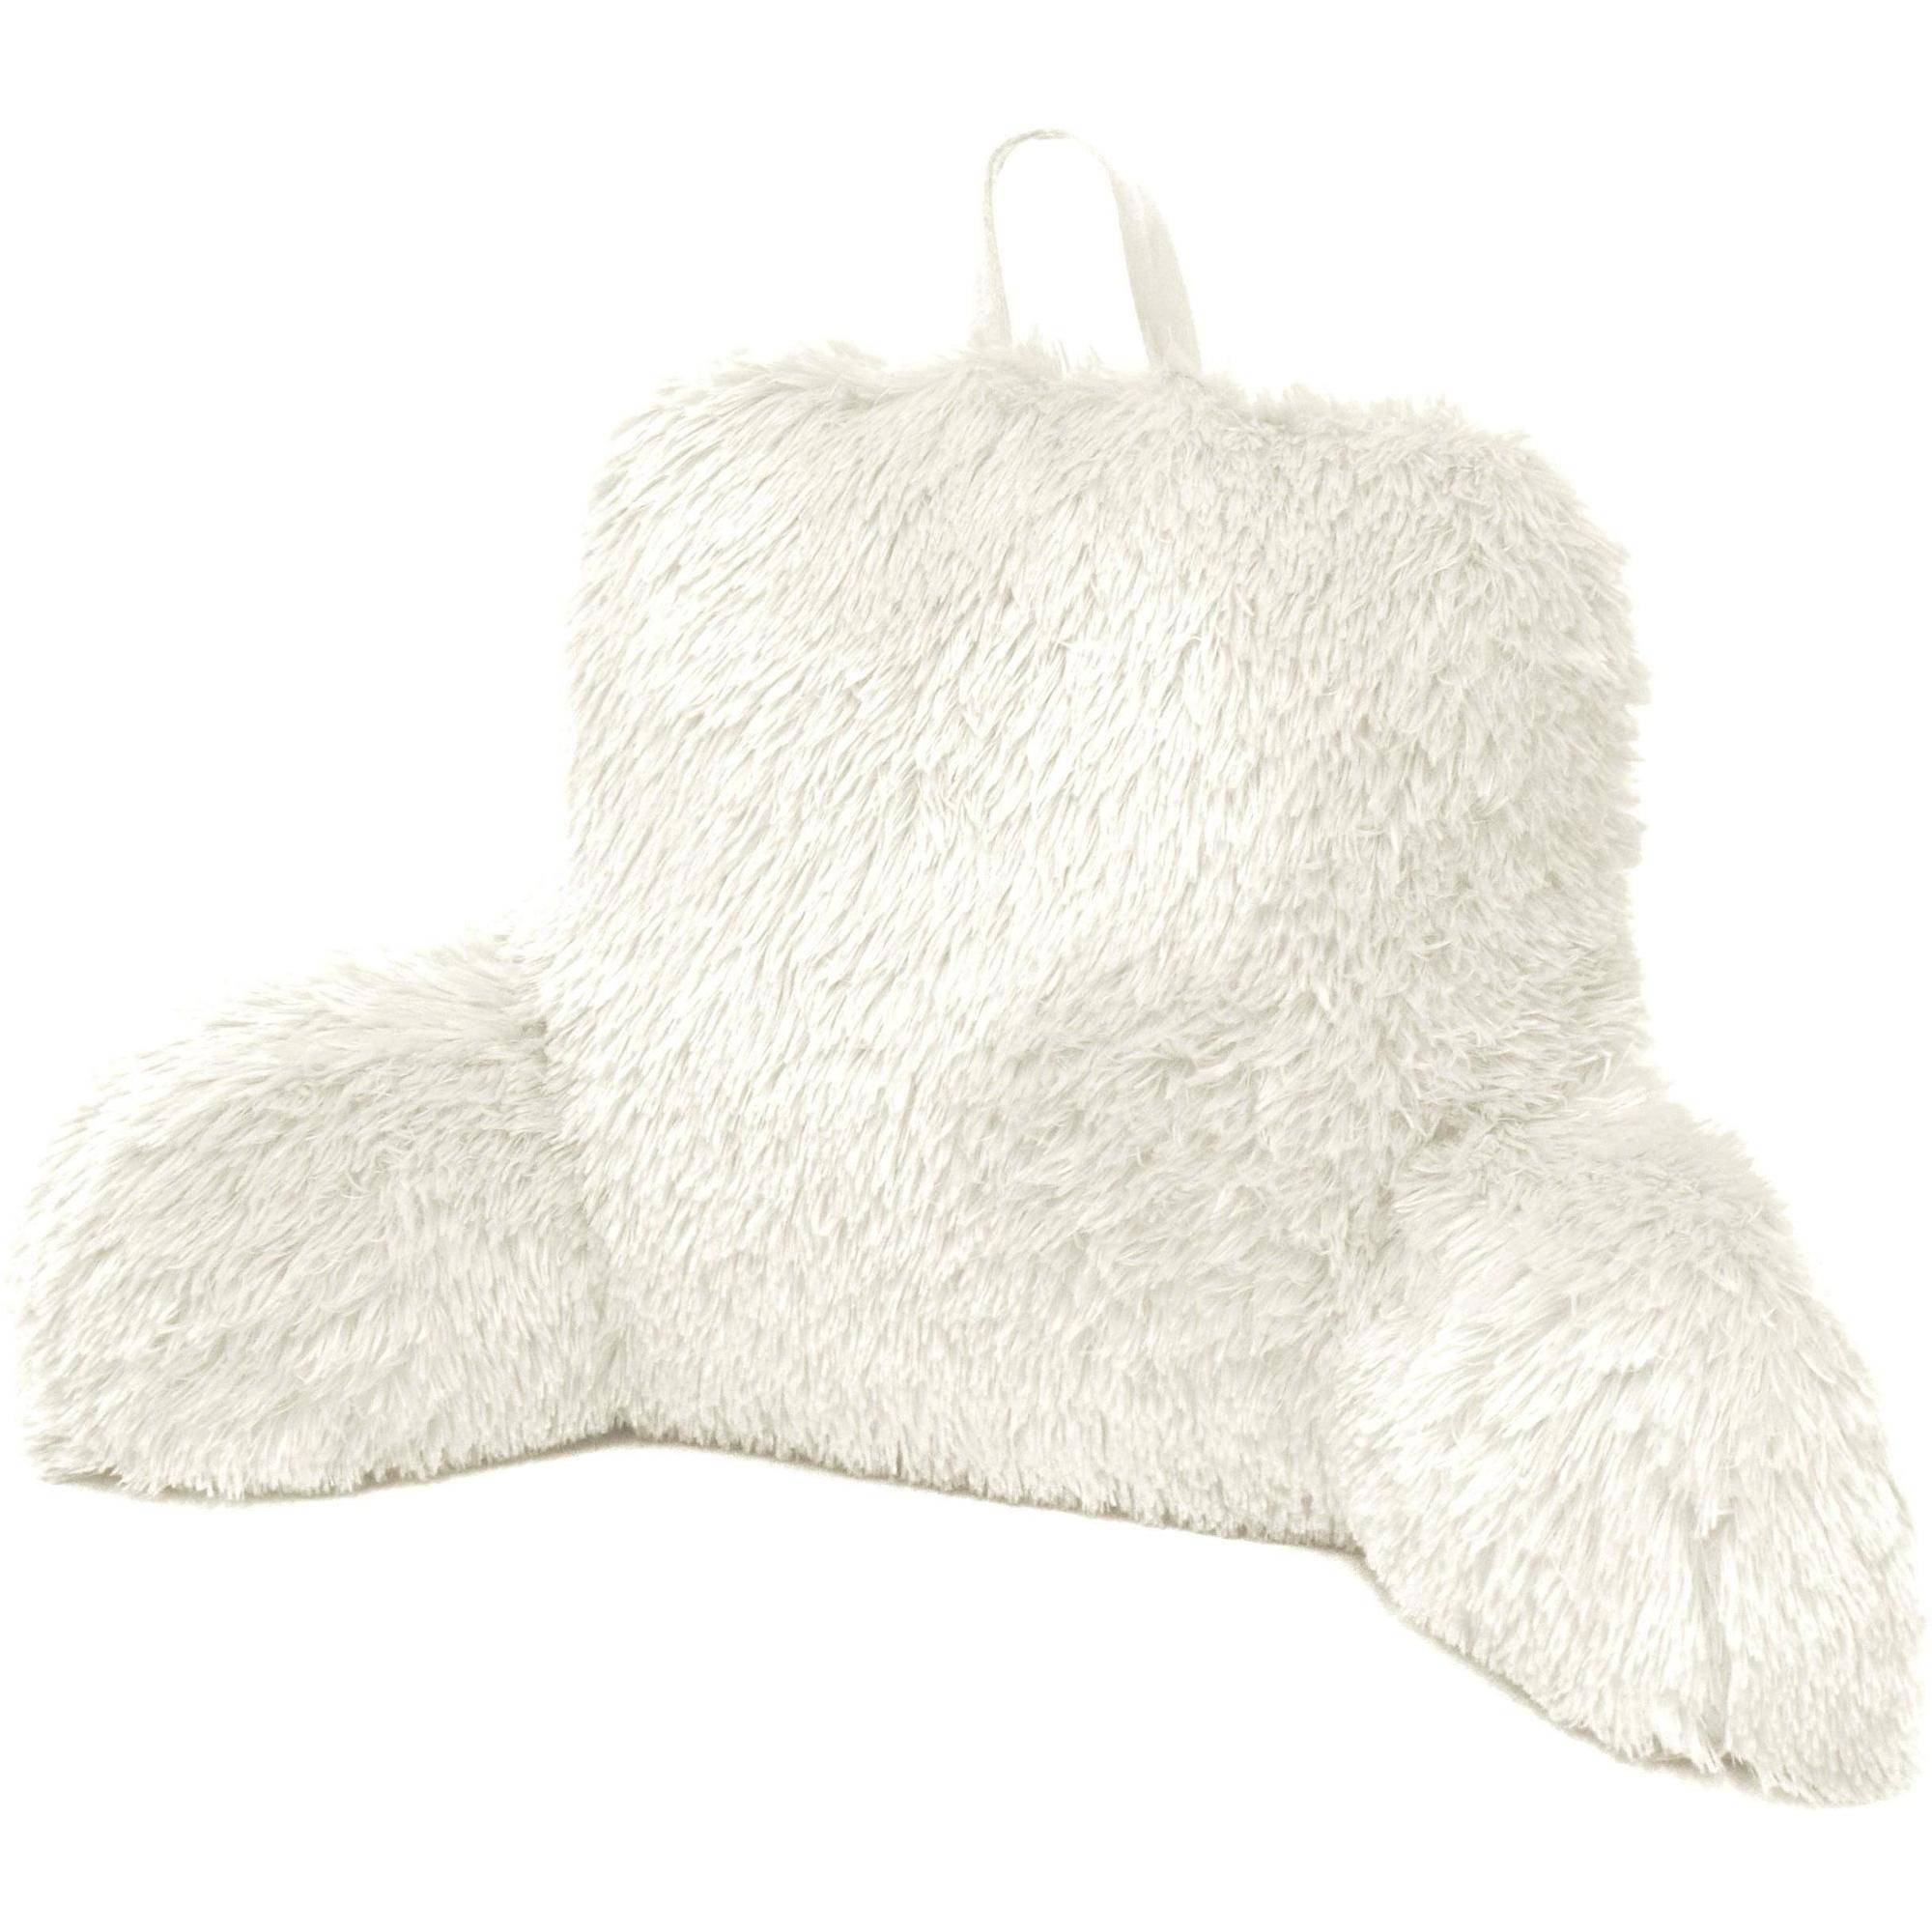 Formula Longhair Faux Fur Backrest Pillow Walmart Com